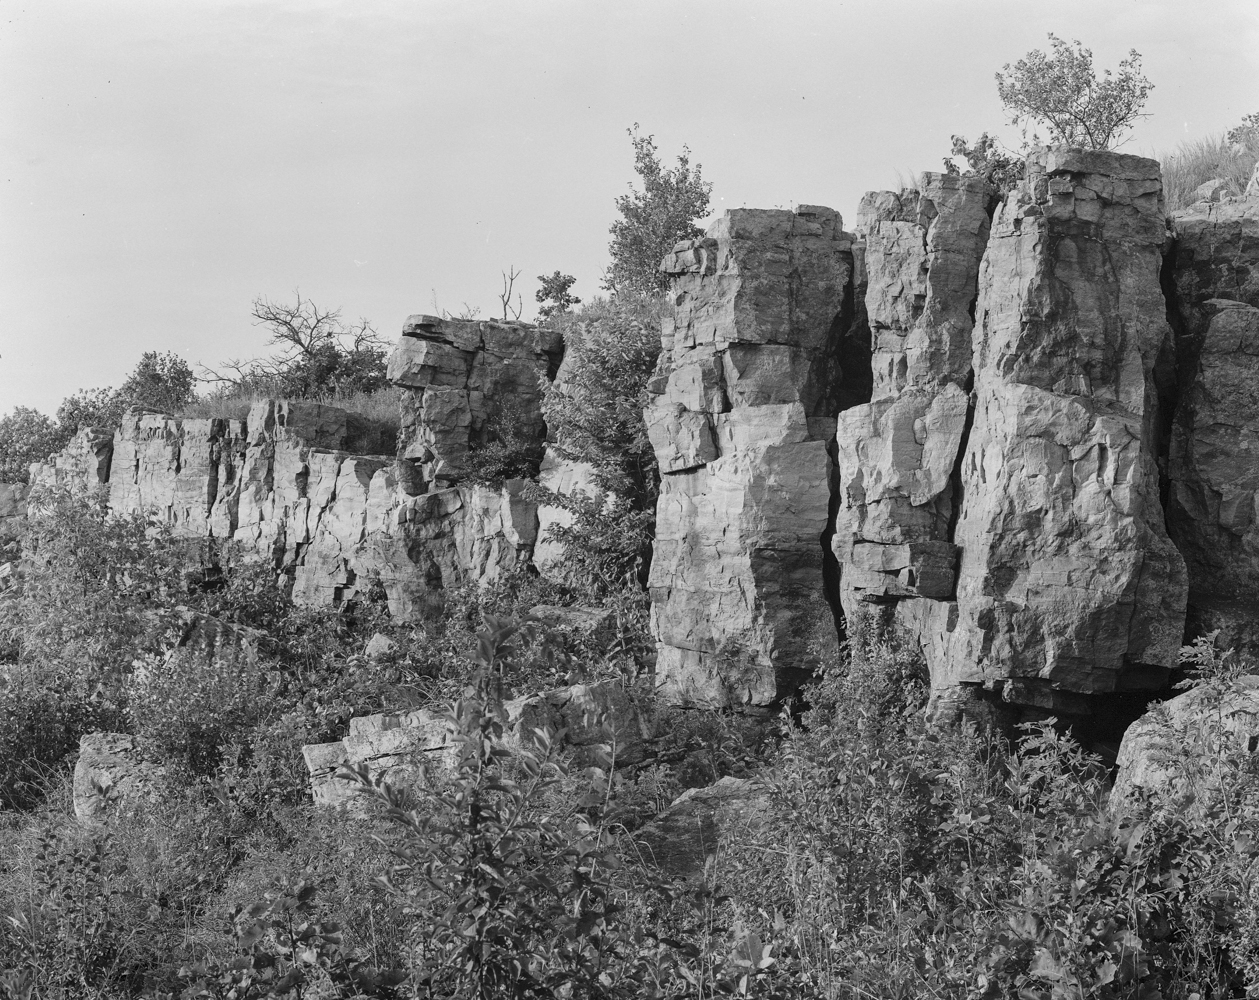 Pipestone National Monument 2019,-HABS/HAER photography